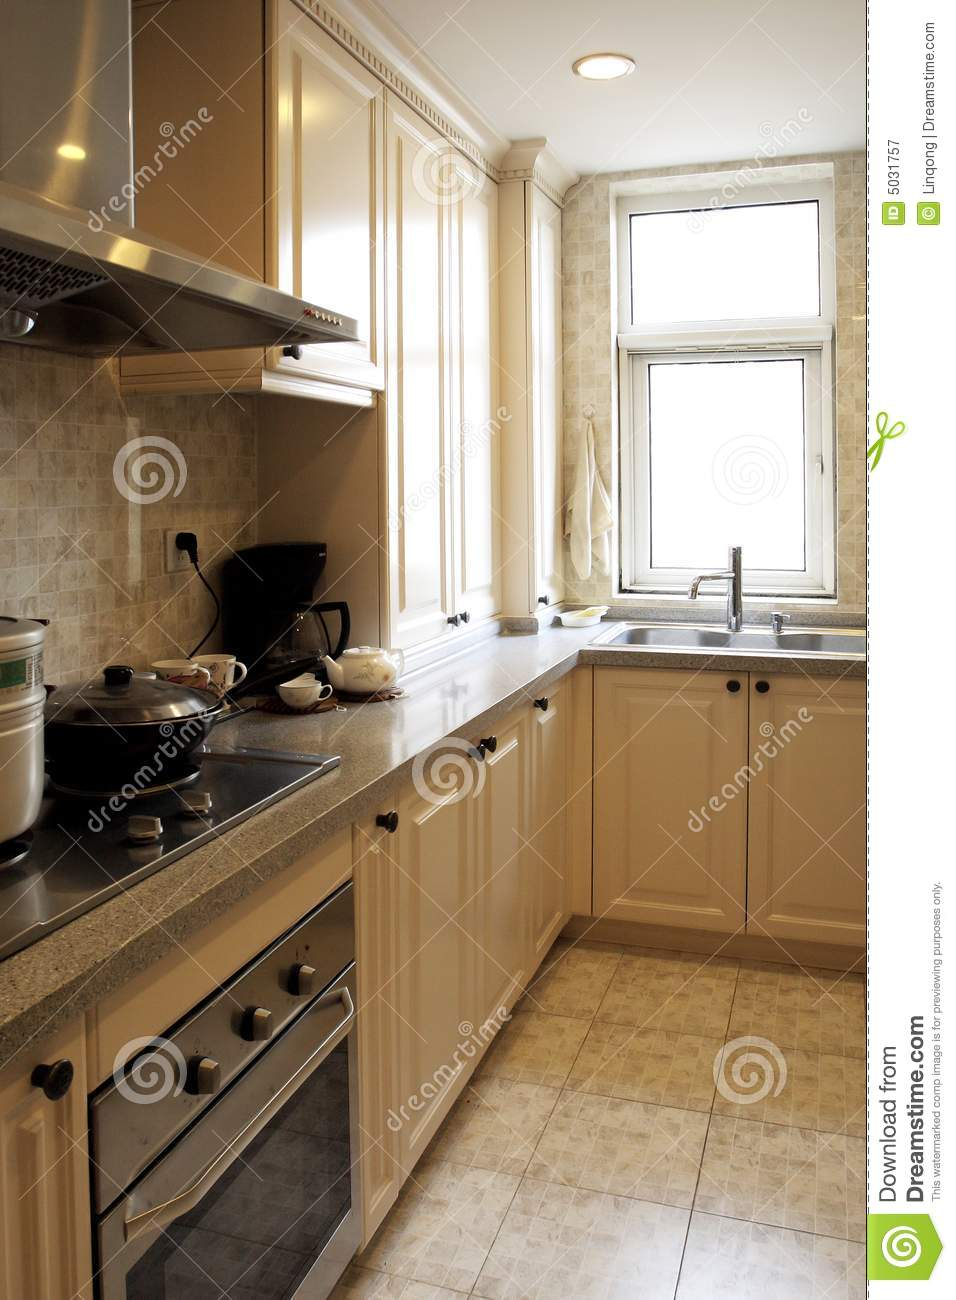 Chinese Style Kitchen Royalty Free Stock Photography